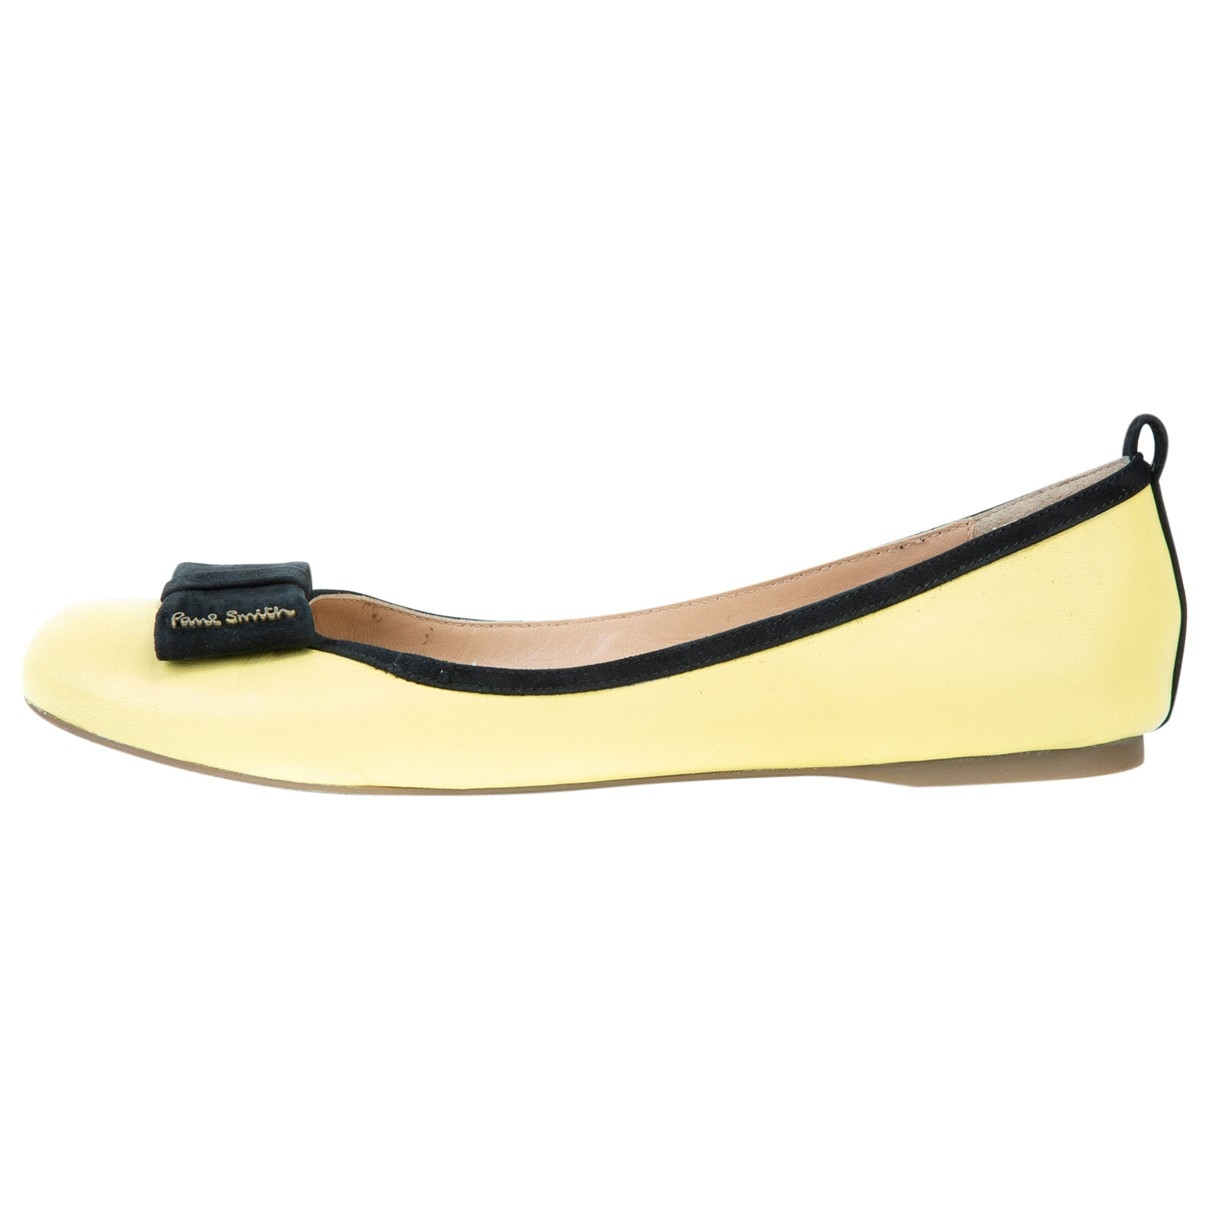 Paul Smith \N Yellow Leather Ballet flats for Women 39 EU